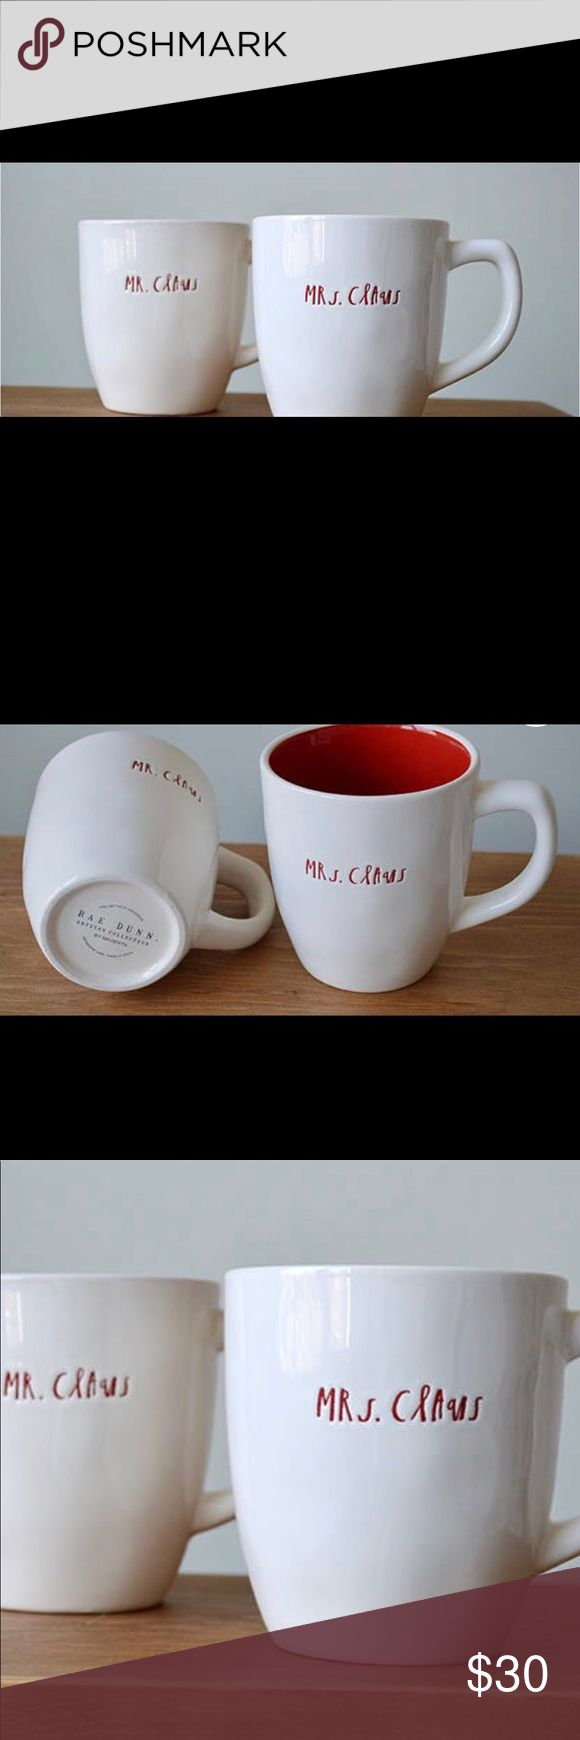 Authentic Rae Dunn Mr. & Mrs. Claus Christmas Mug This is for the coveted set! I have three sets for sale. This listing is for one set which includes:  1 Mr. Claus, Red Small Cursive Letter, Single Sided  1 Mrs. Claus, Ref Small Cursive Letter, Single Sided    Please note: All Rae Dunn Products have perfect imperfections.   These pieces are great for everyday use (dishwasher and microwave safe), to display as a collection, and also make a great gift! Other